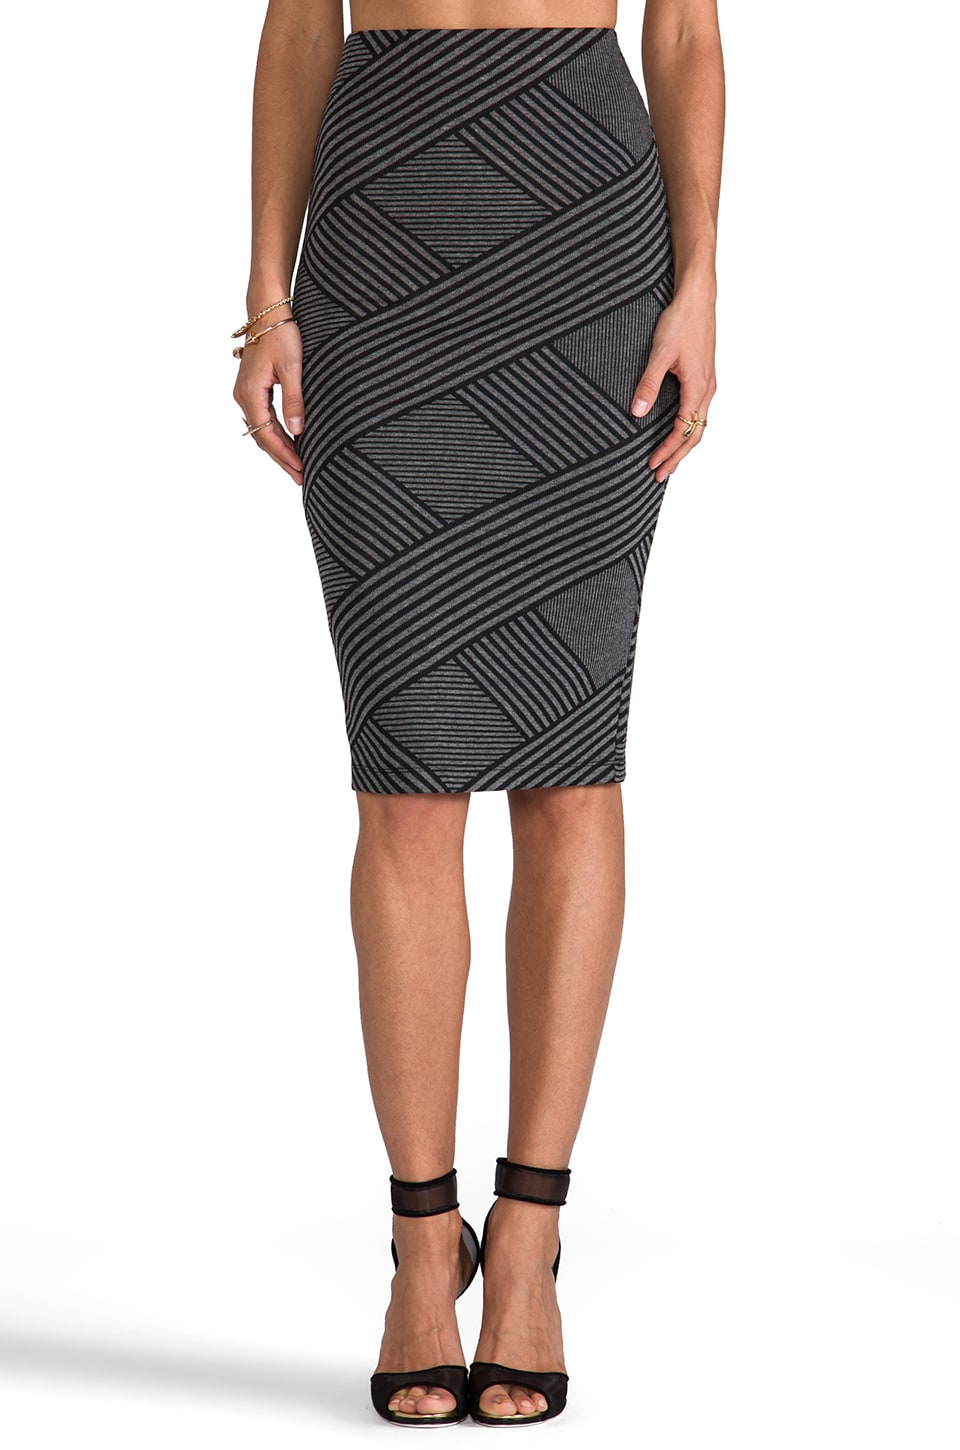 BB Dakota Caterina Stripe Pencil Skirt in Black